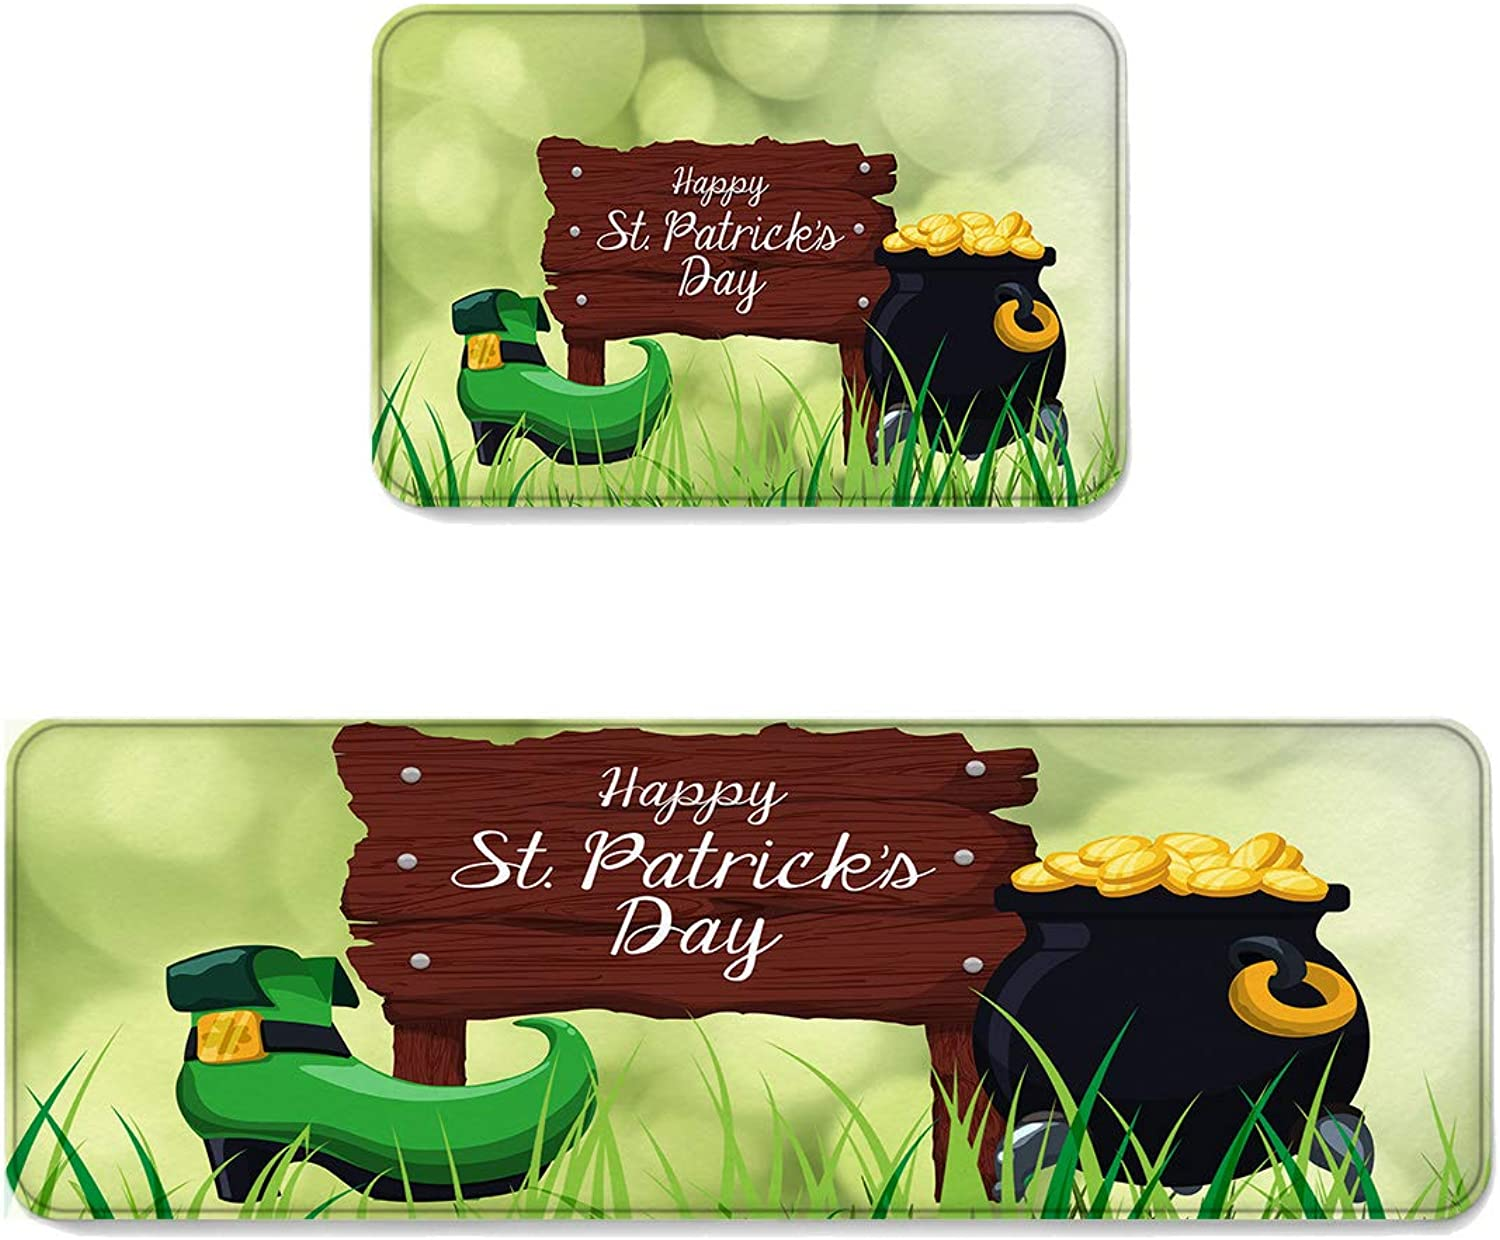 Kitchen Rug Sets 2 Piece Floor Mats Non-Slip Rubber Backing Area Rugs St Patrick's Day Fantasy Bubbles Grass gold Coin Doormat Washable Carpet Inside Door Mat Pad Sets (19.7  x 31.5 +19.7  x 47.2 )